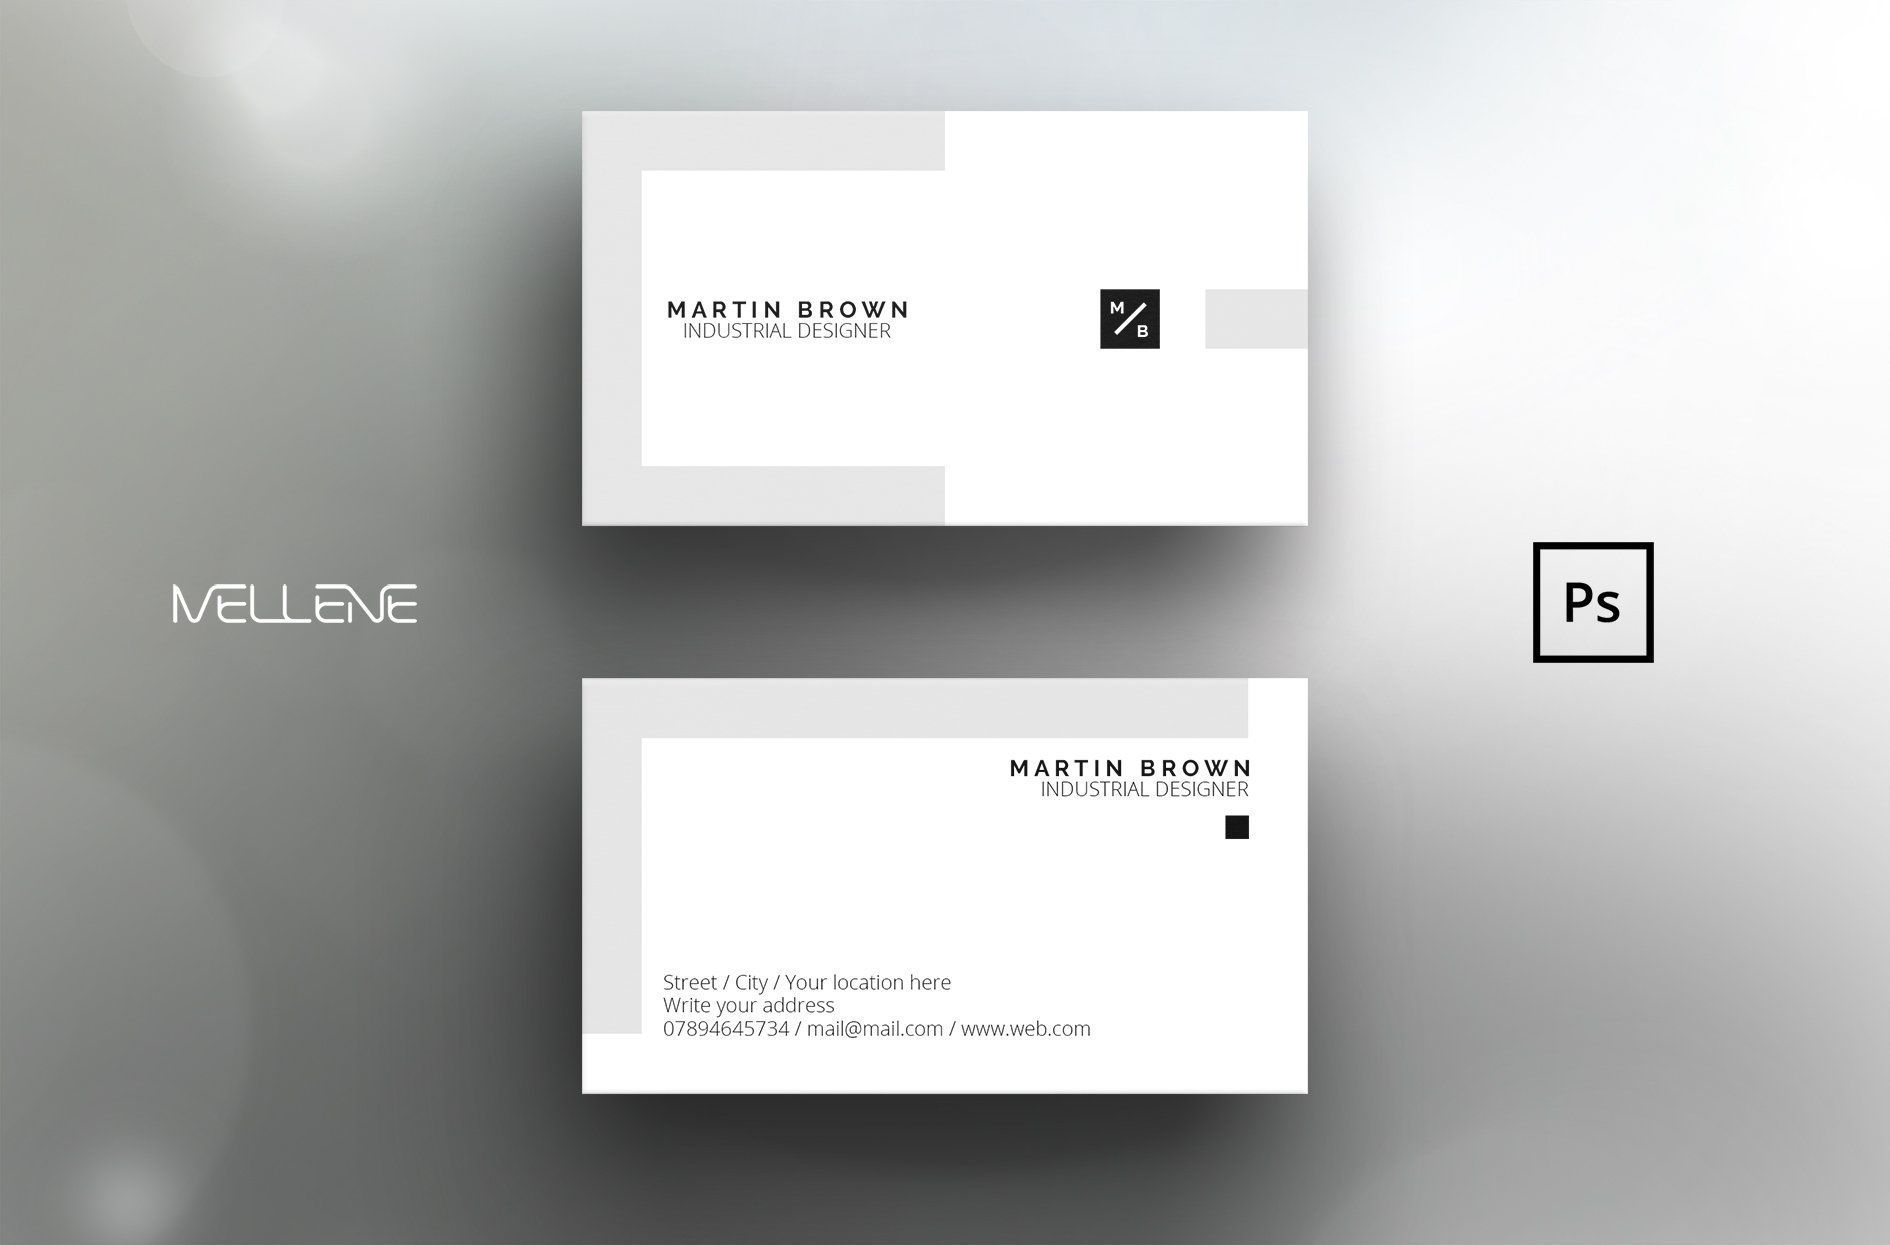 004 Excellent Simple Busines Card Template Photoshop Sample Full